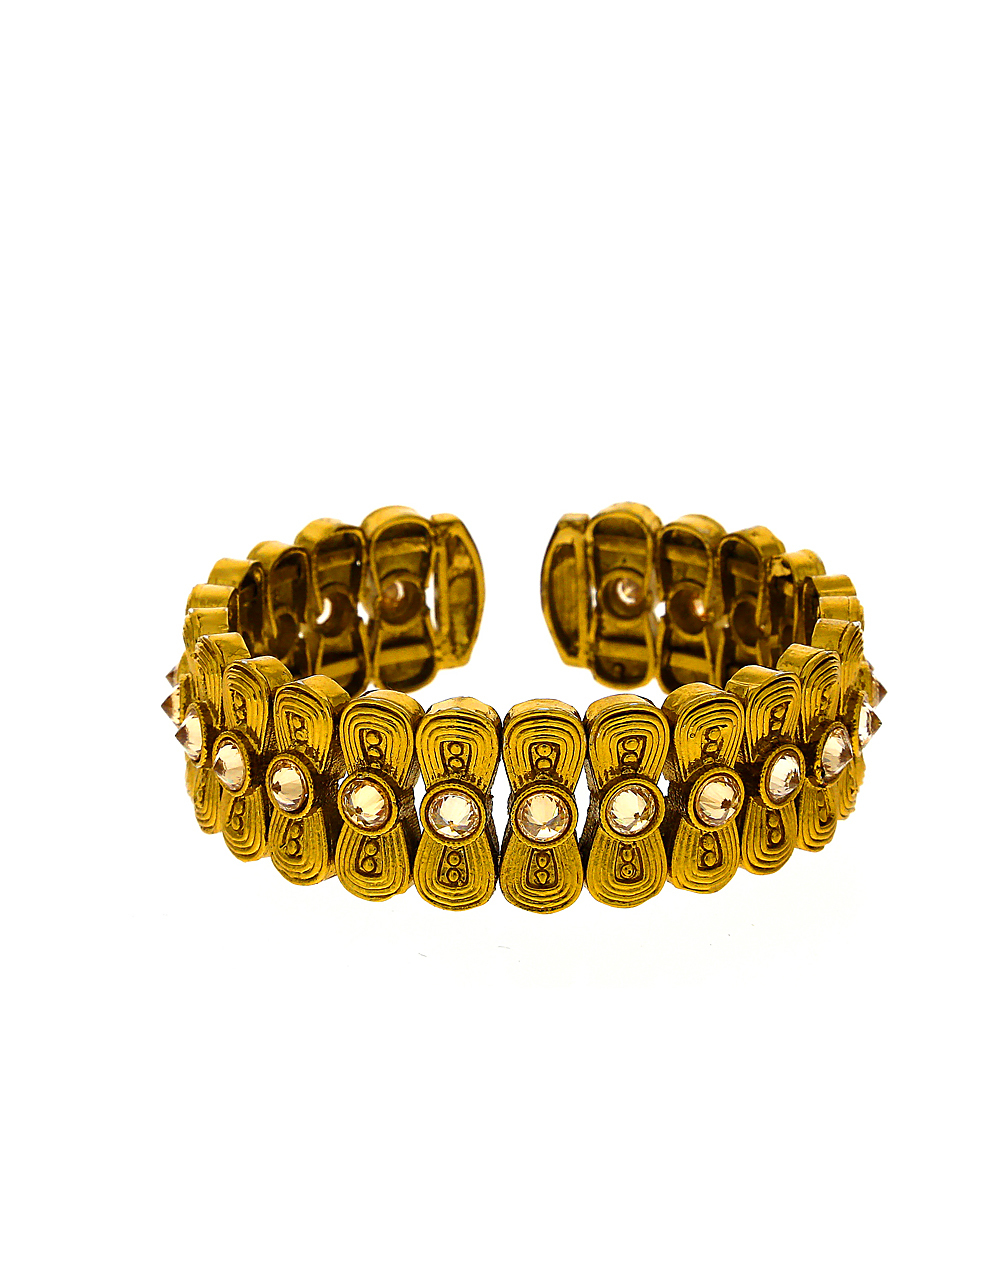 Beautiful Gold-Finish Studded With Lct Stones Adorable Bracelet